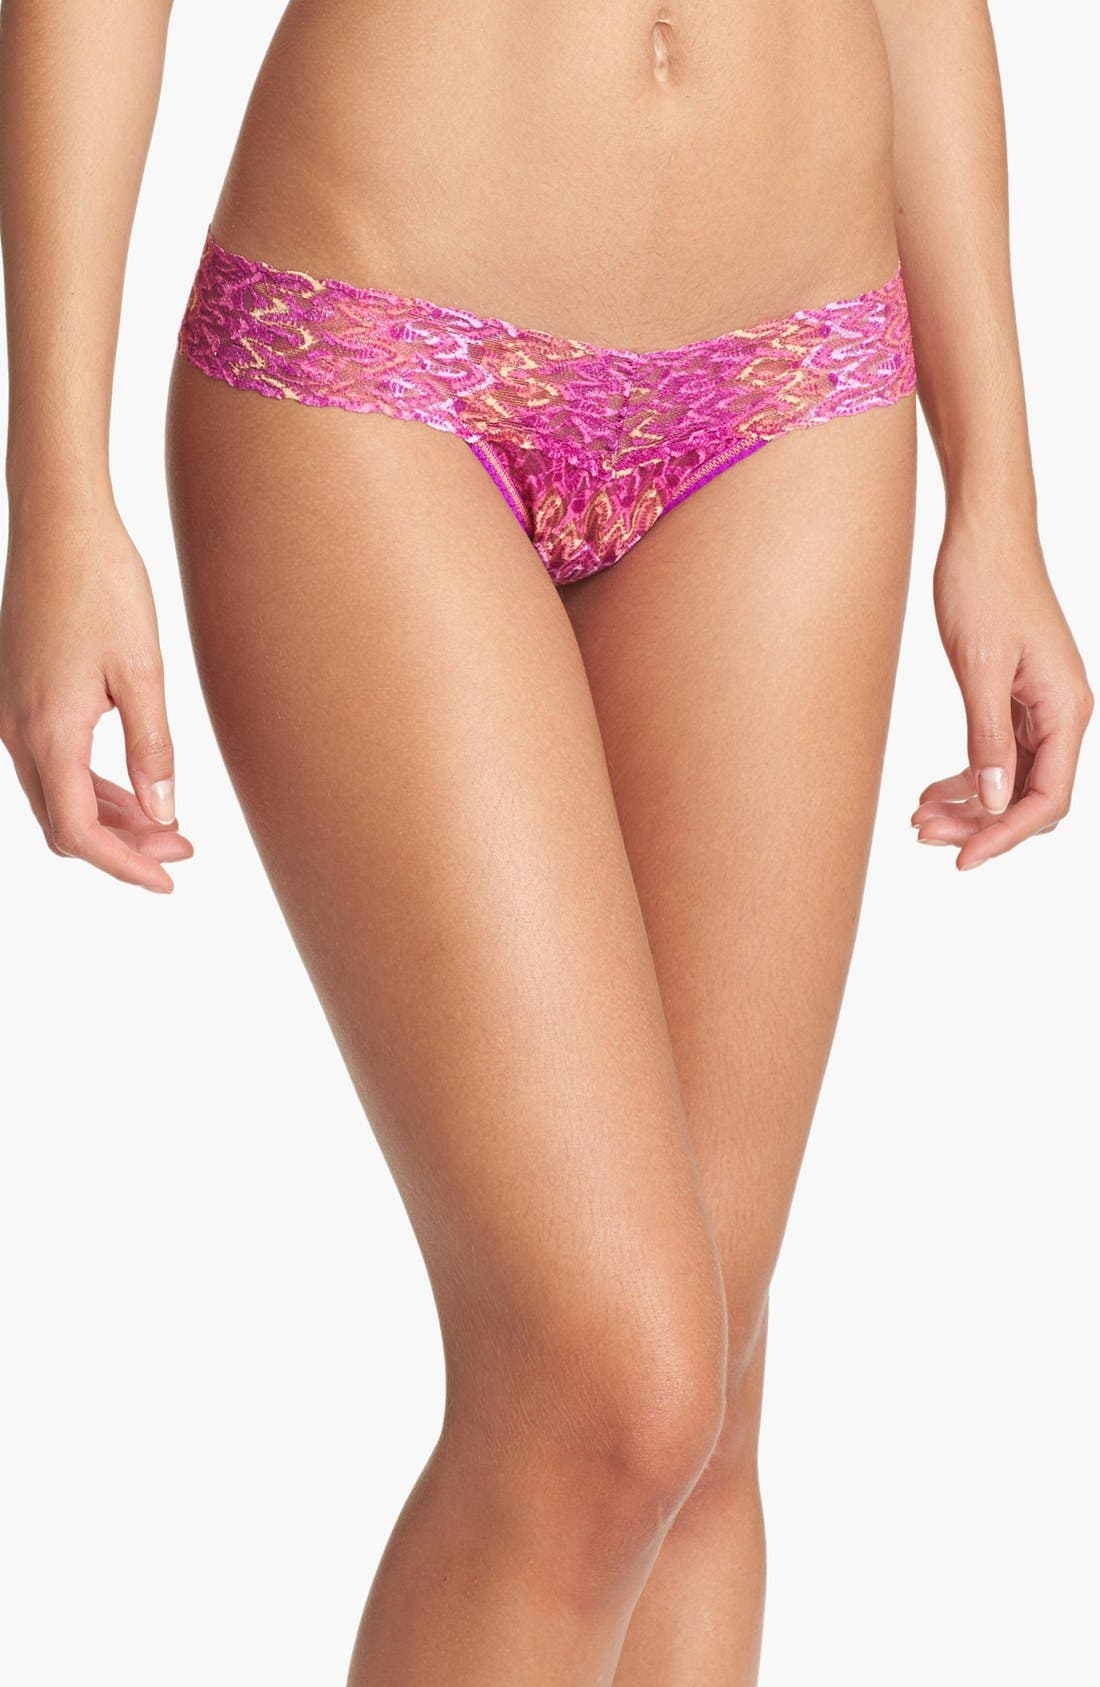 Alternate Image 1 Selected - Hanky Panky 'Flame' Low Rise Thong